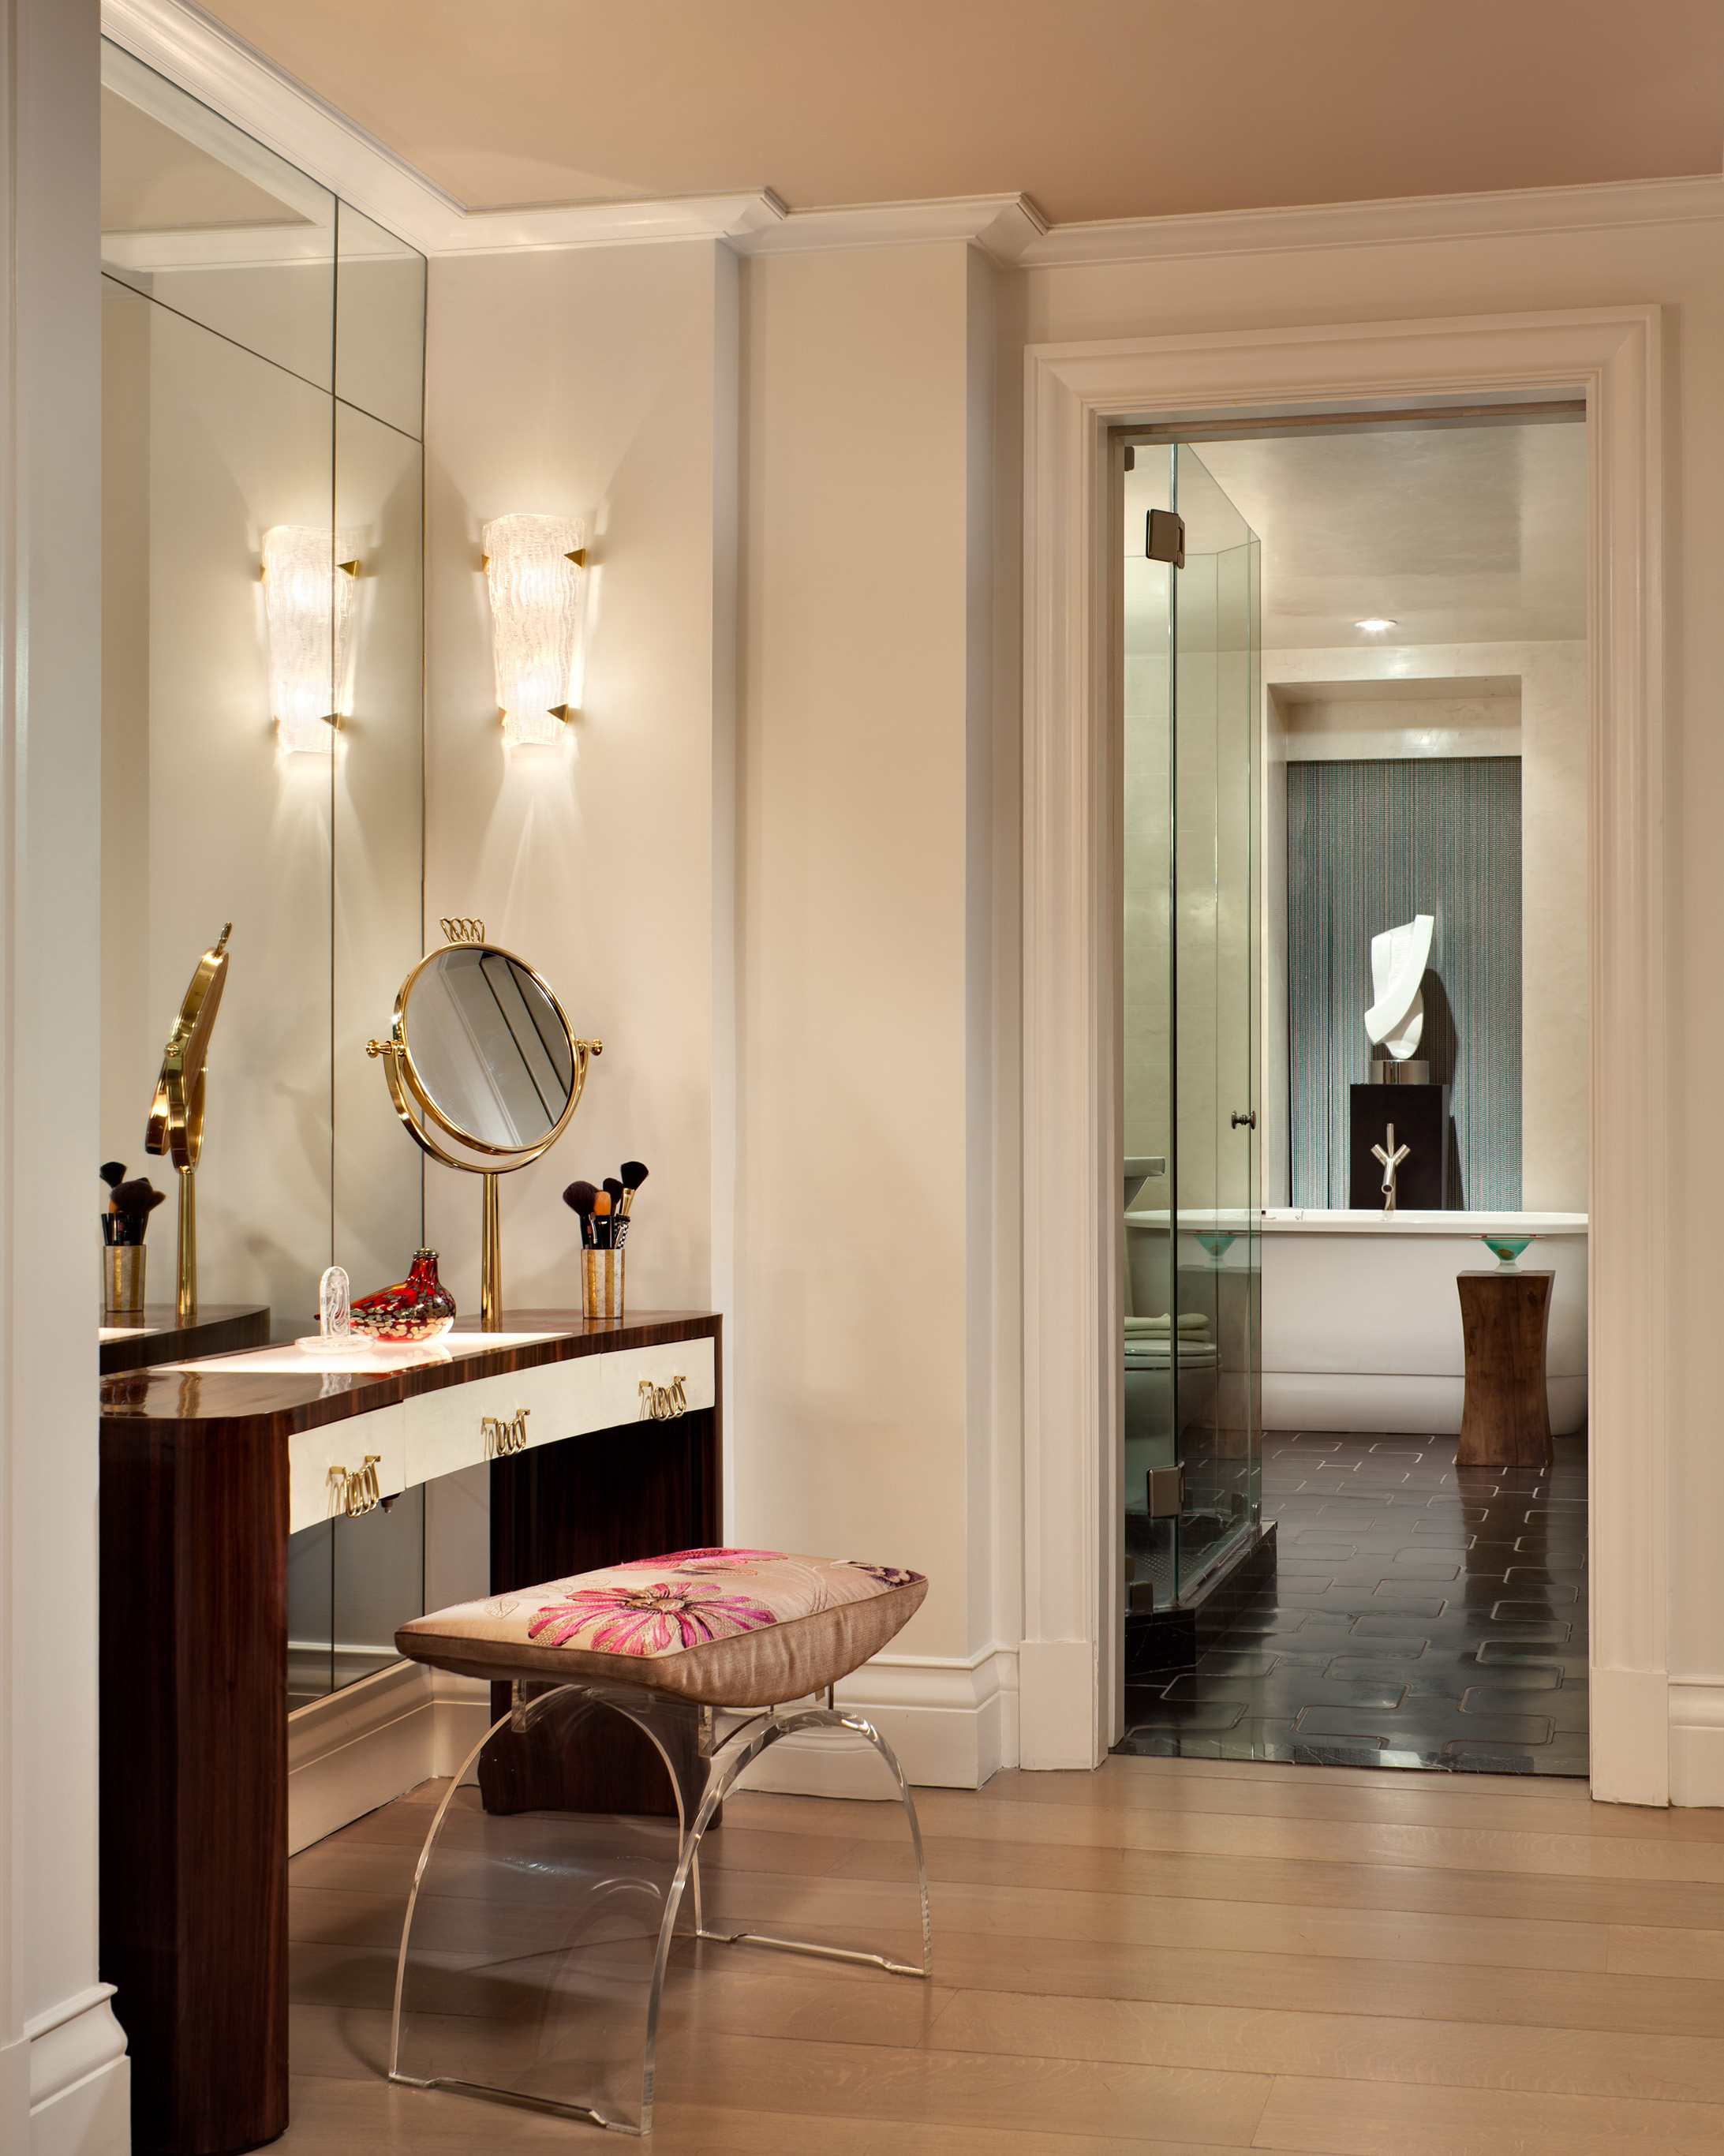 Irwin weiner interiors for Bedroom designs with attached bathroom and dressing room